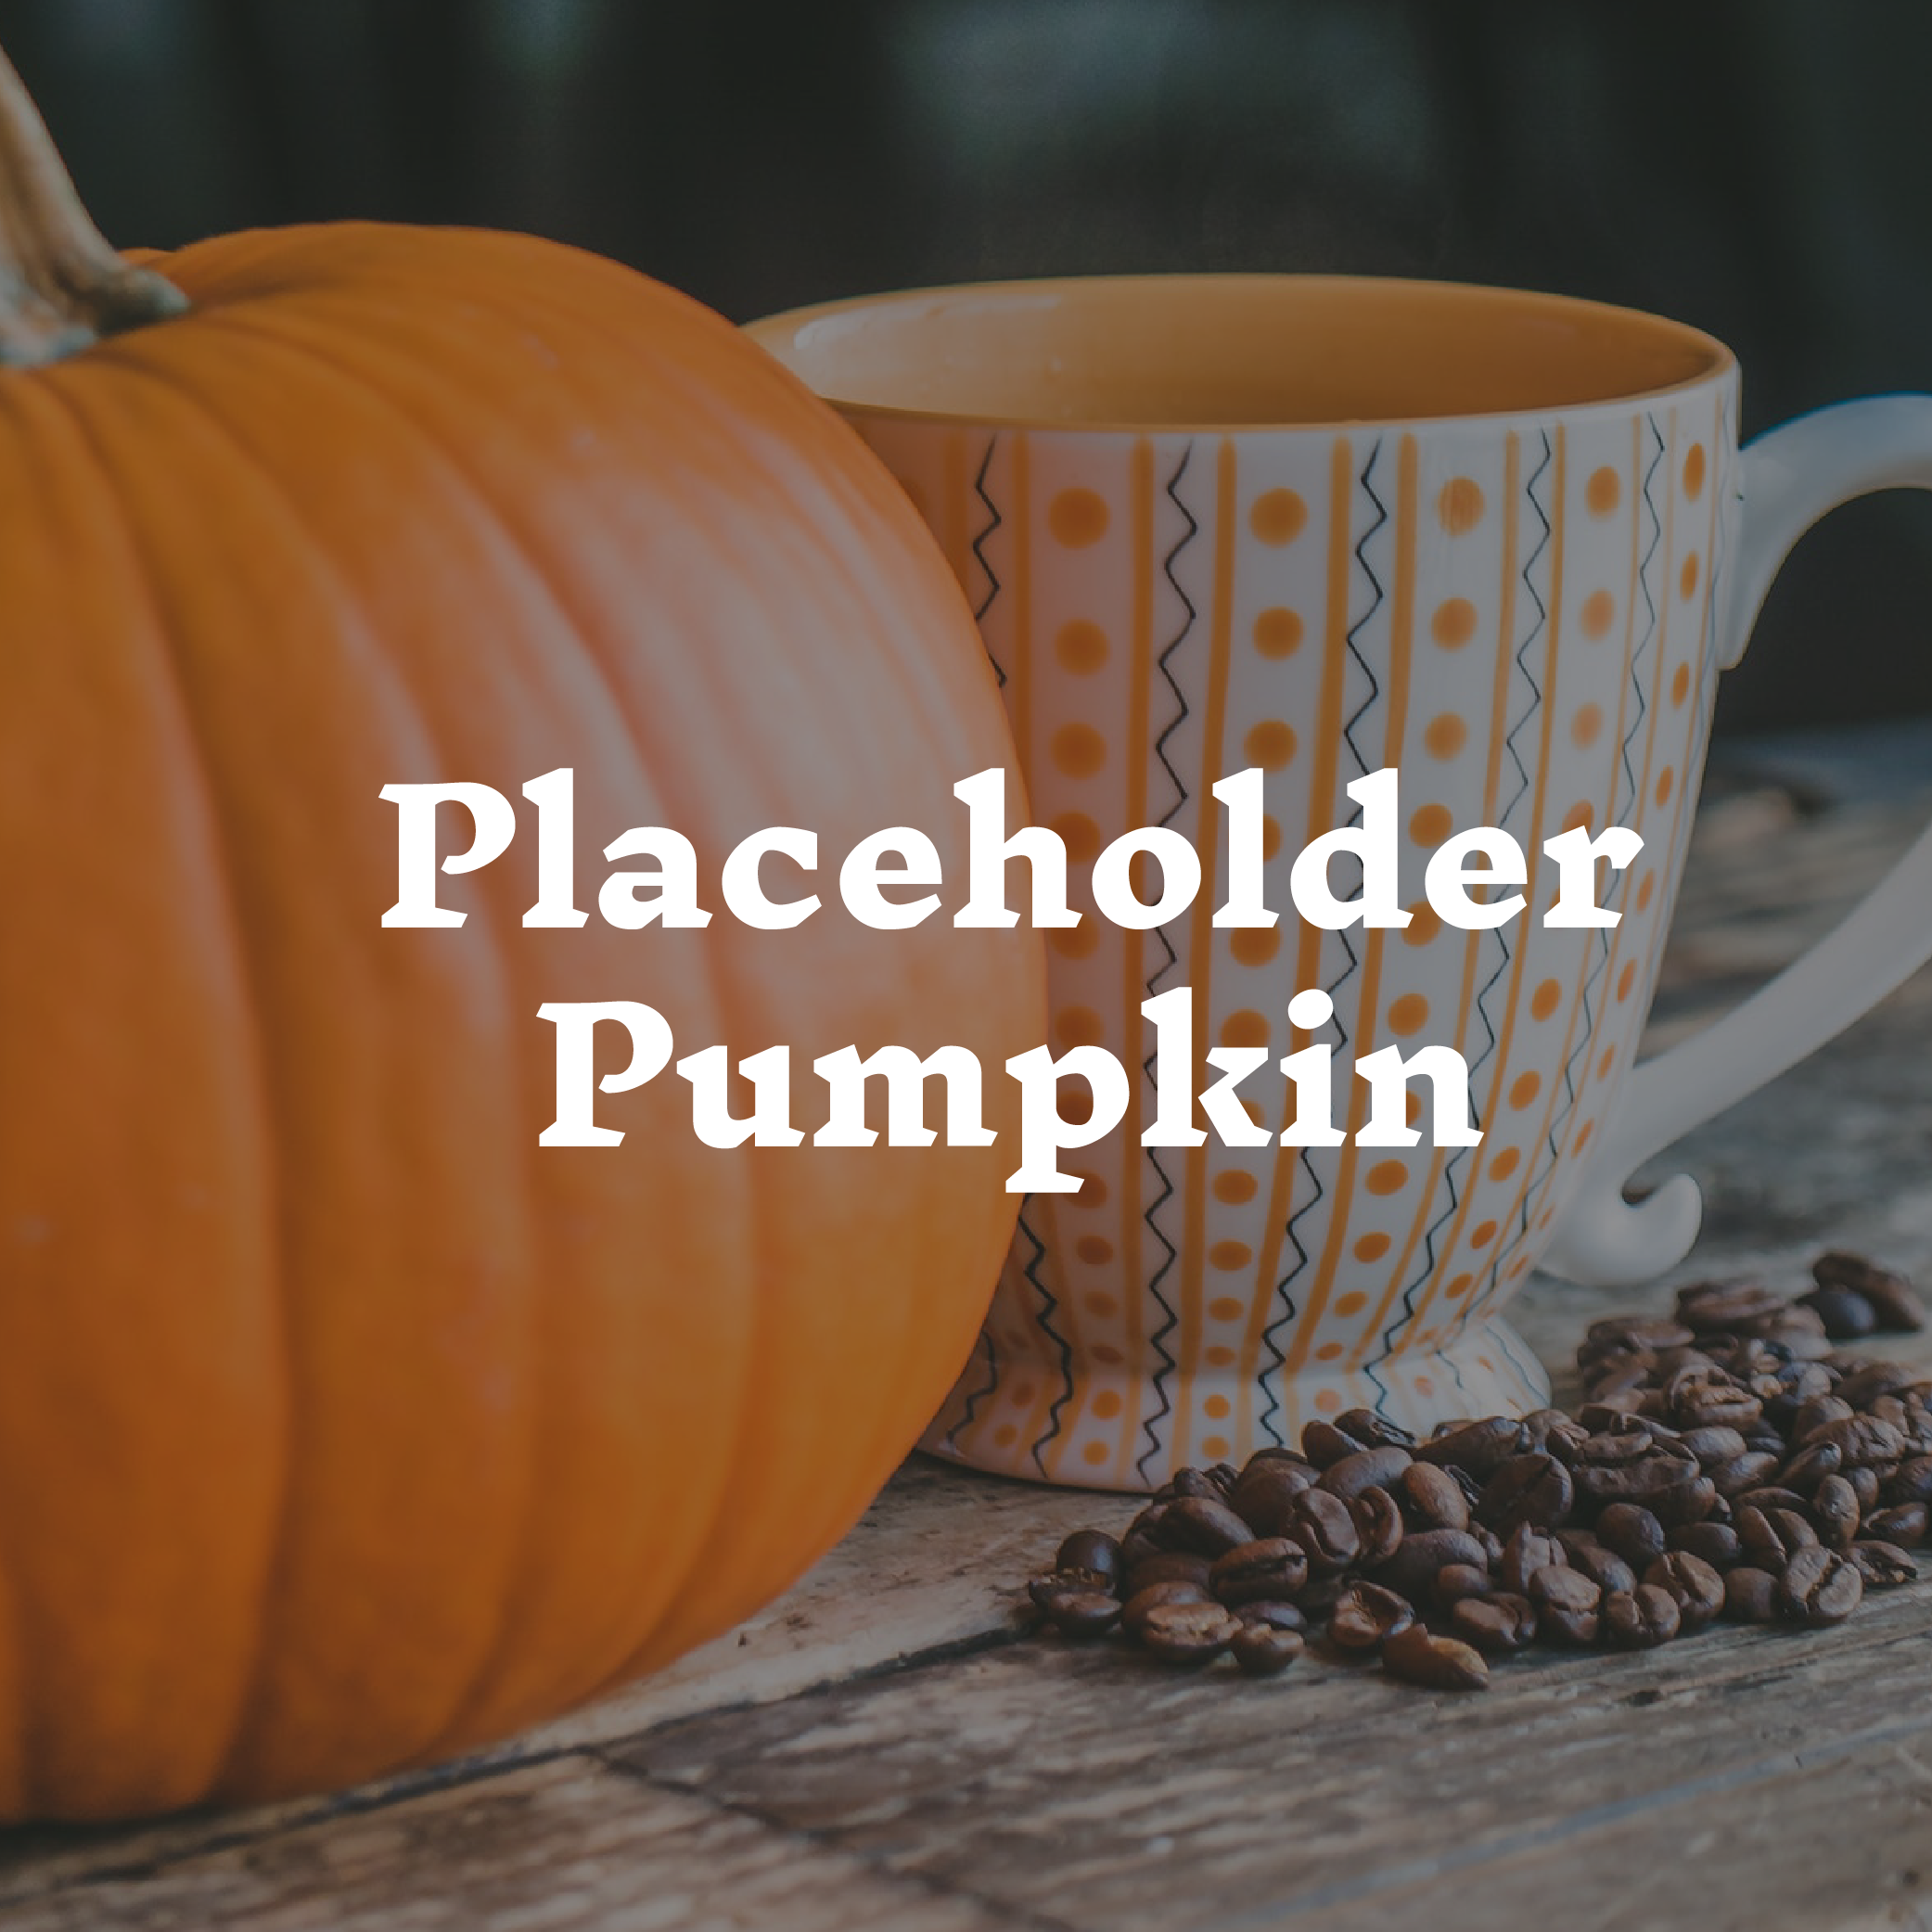 Placeholder Pumpkin